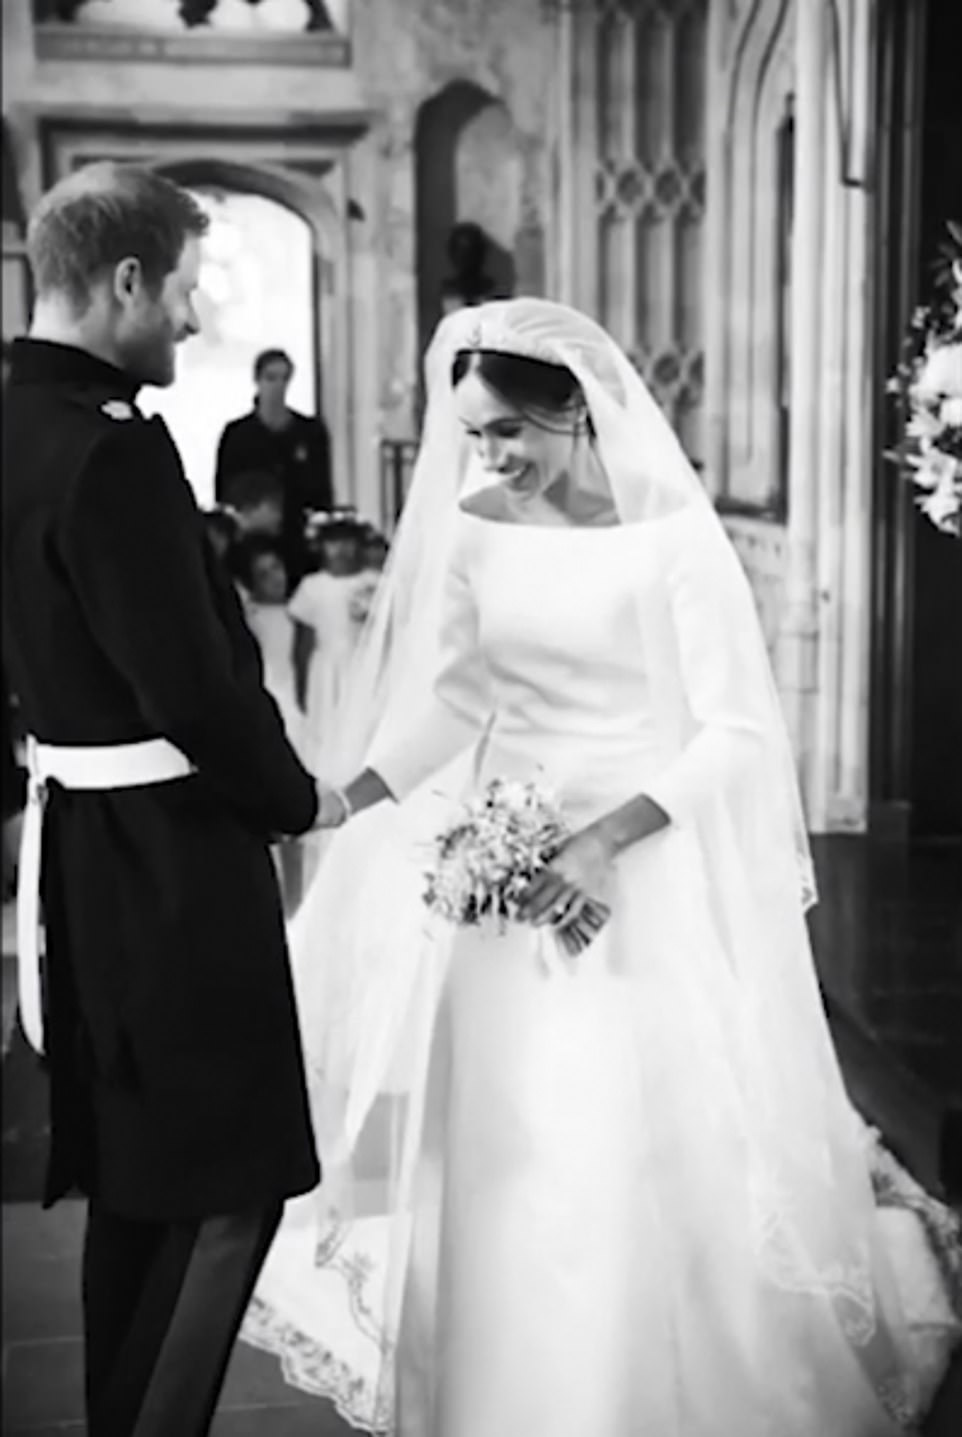 13679024-7046157-The_Duke_and_Duchess_of_Sussex_pictured_have_shared_several_behi-a-63_1558255570514